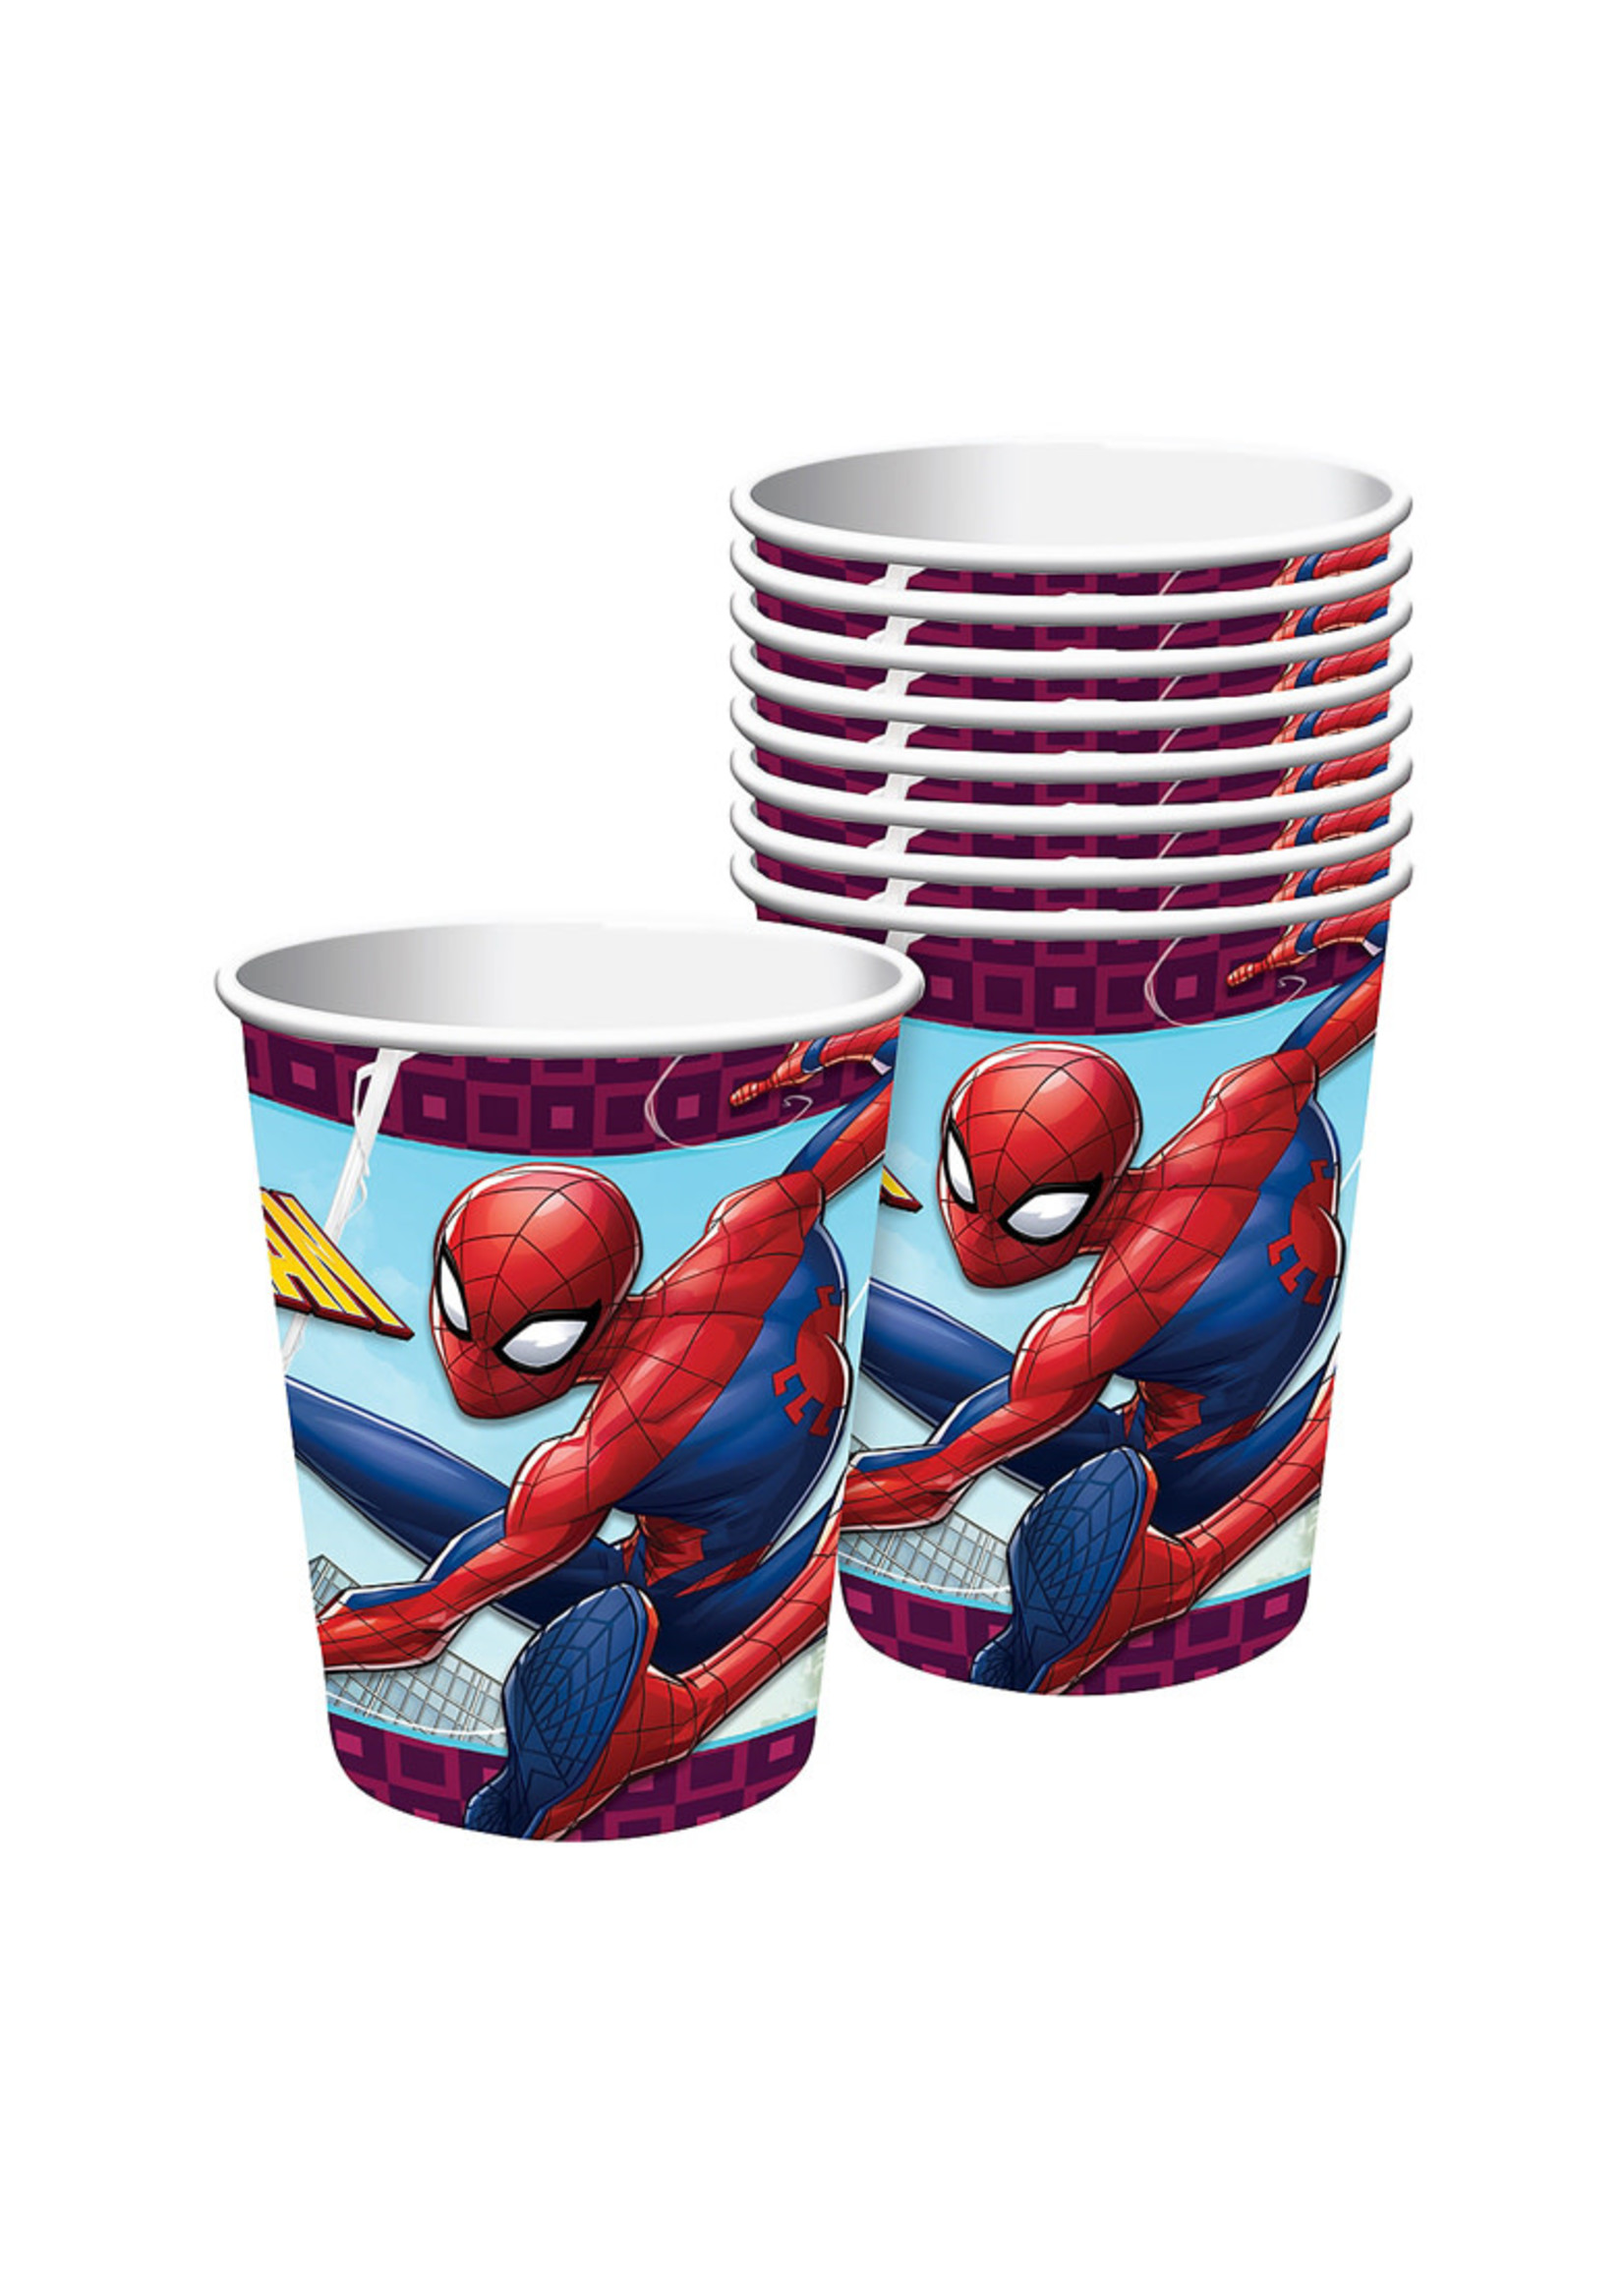 Spider-Man Webbed Wonder Cups 8ct